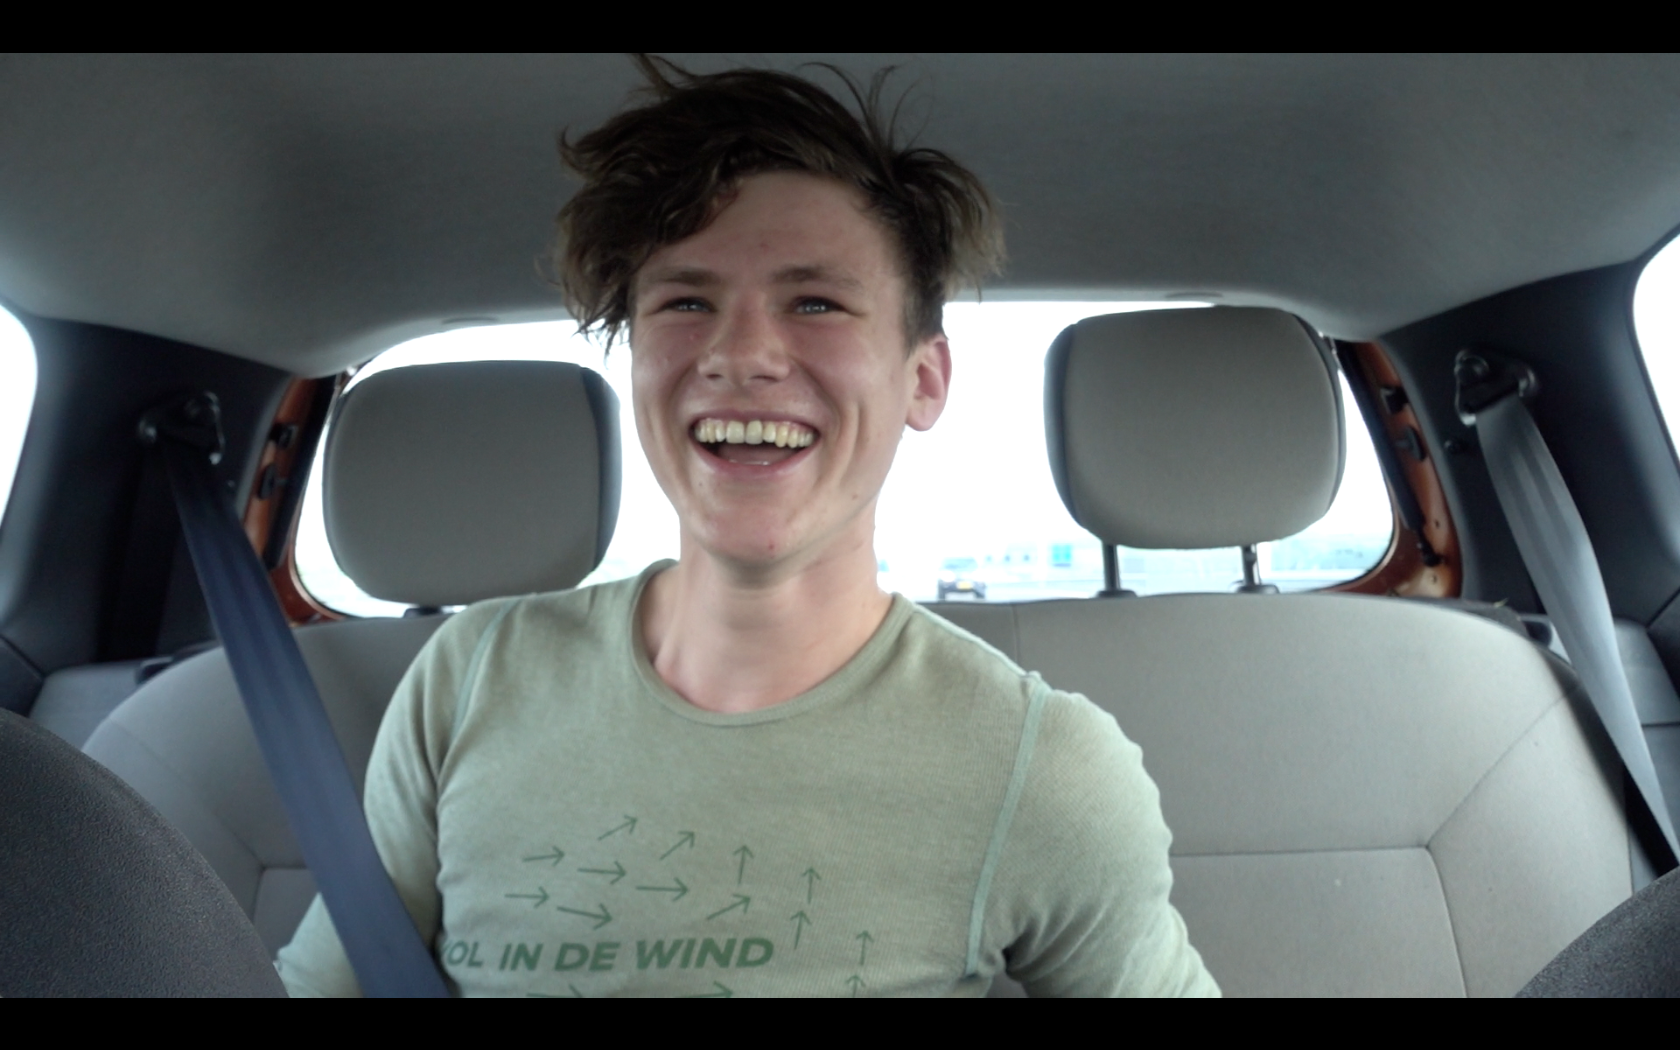 This is Chris being super excited.